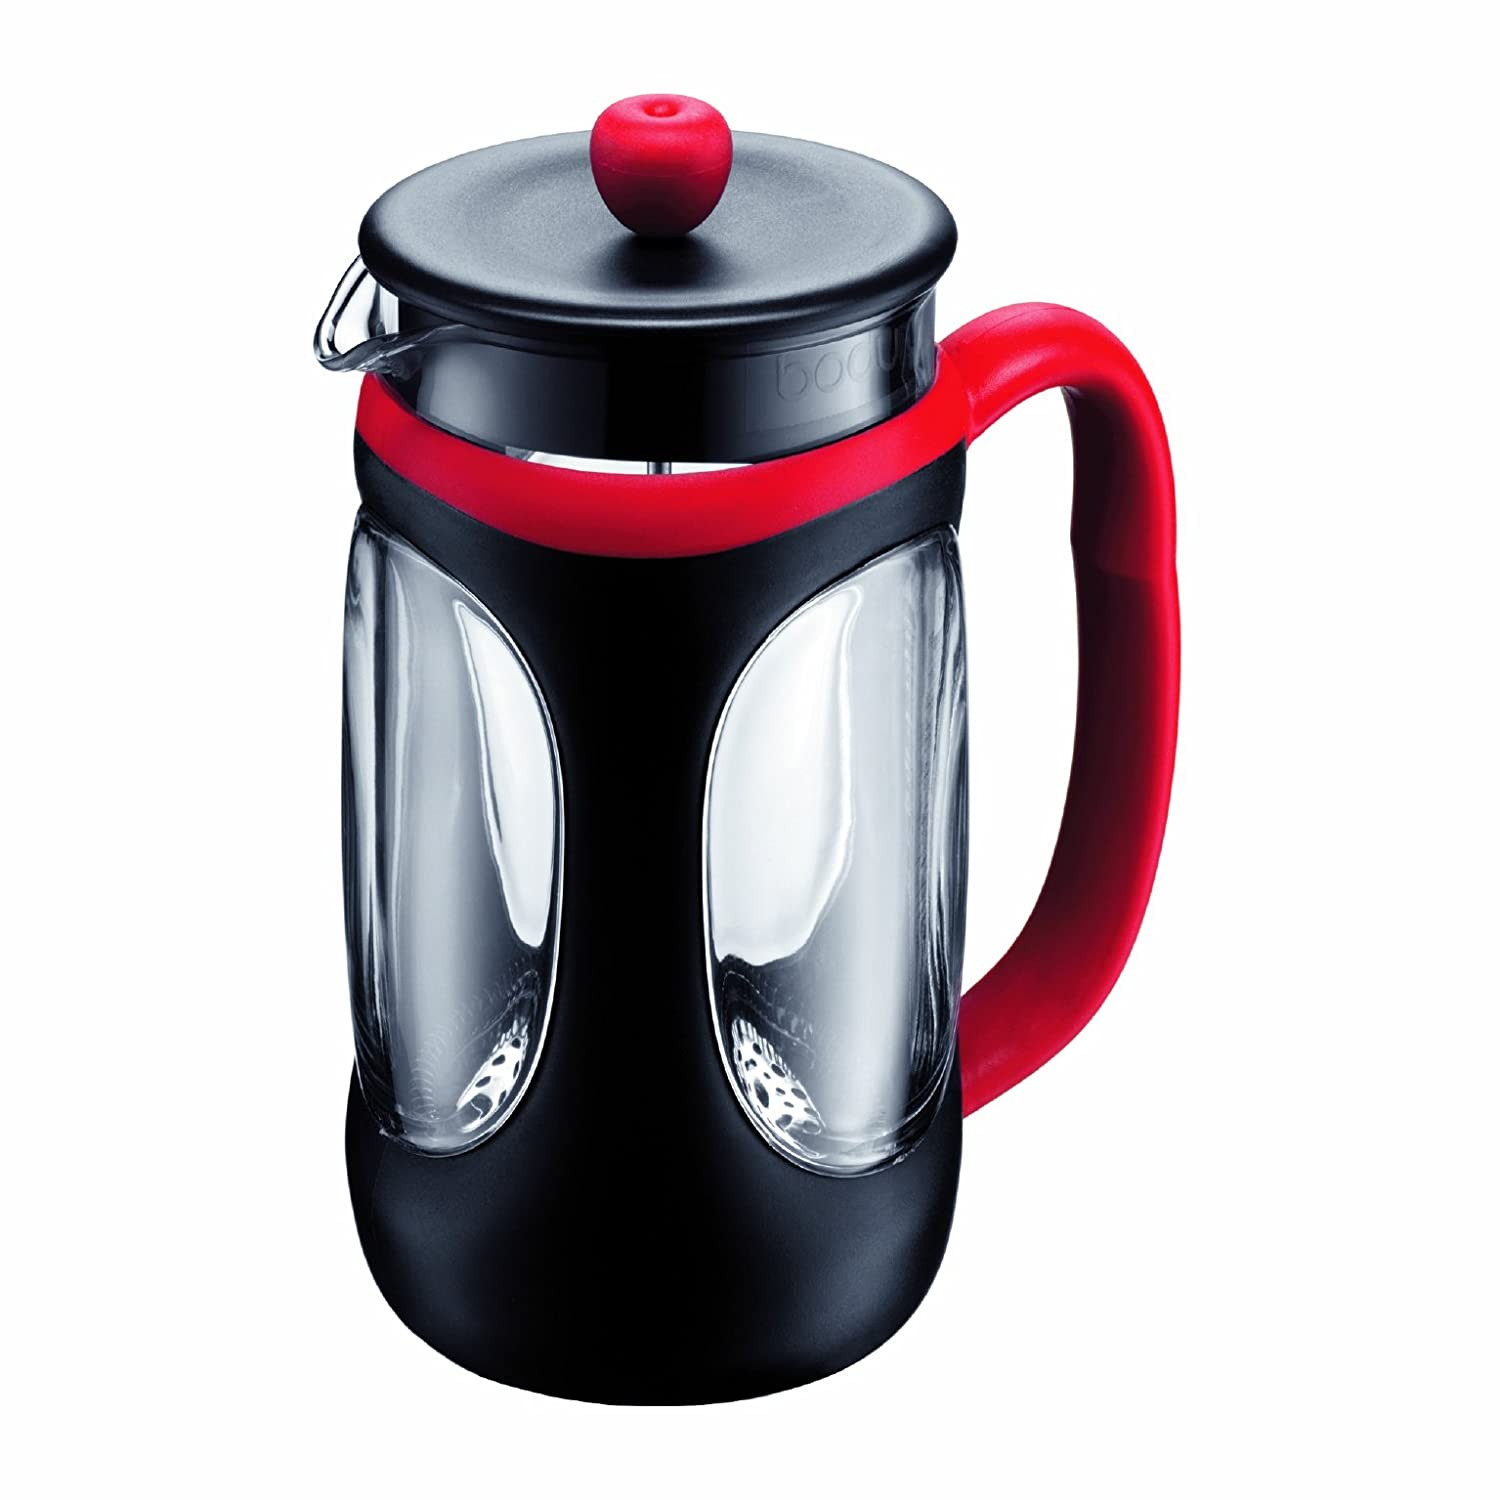 Bodum Young Press French Press Coffee Maker, 34 Ounce, 1 Liter, (8 Cup), Red and Black 10096-364US4